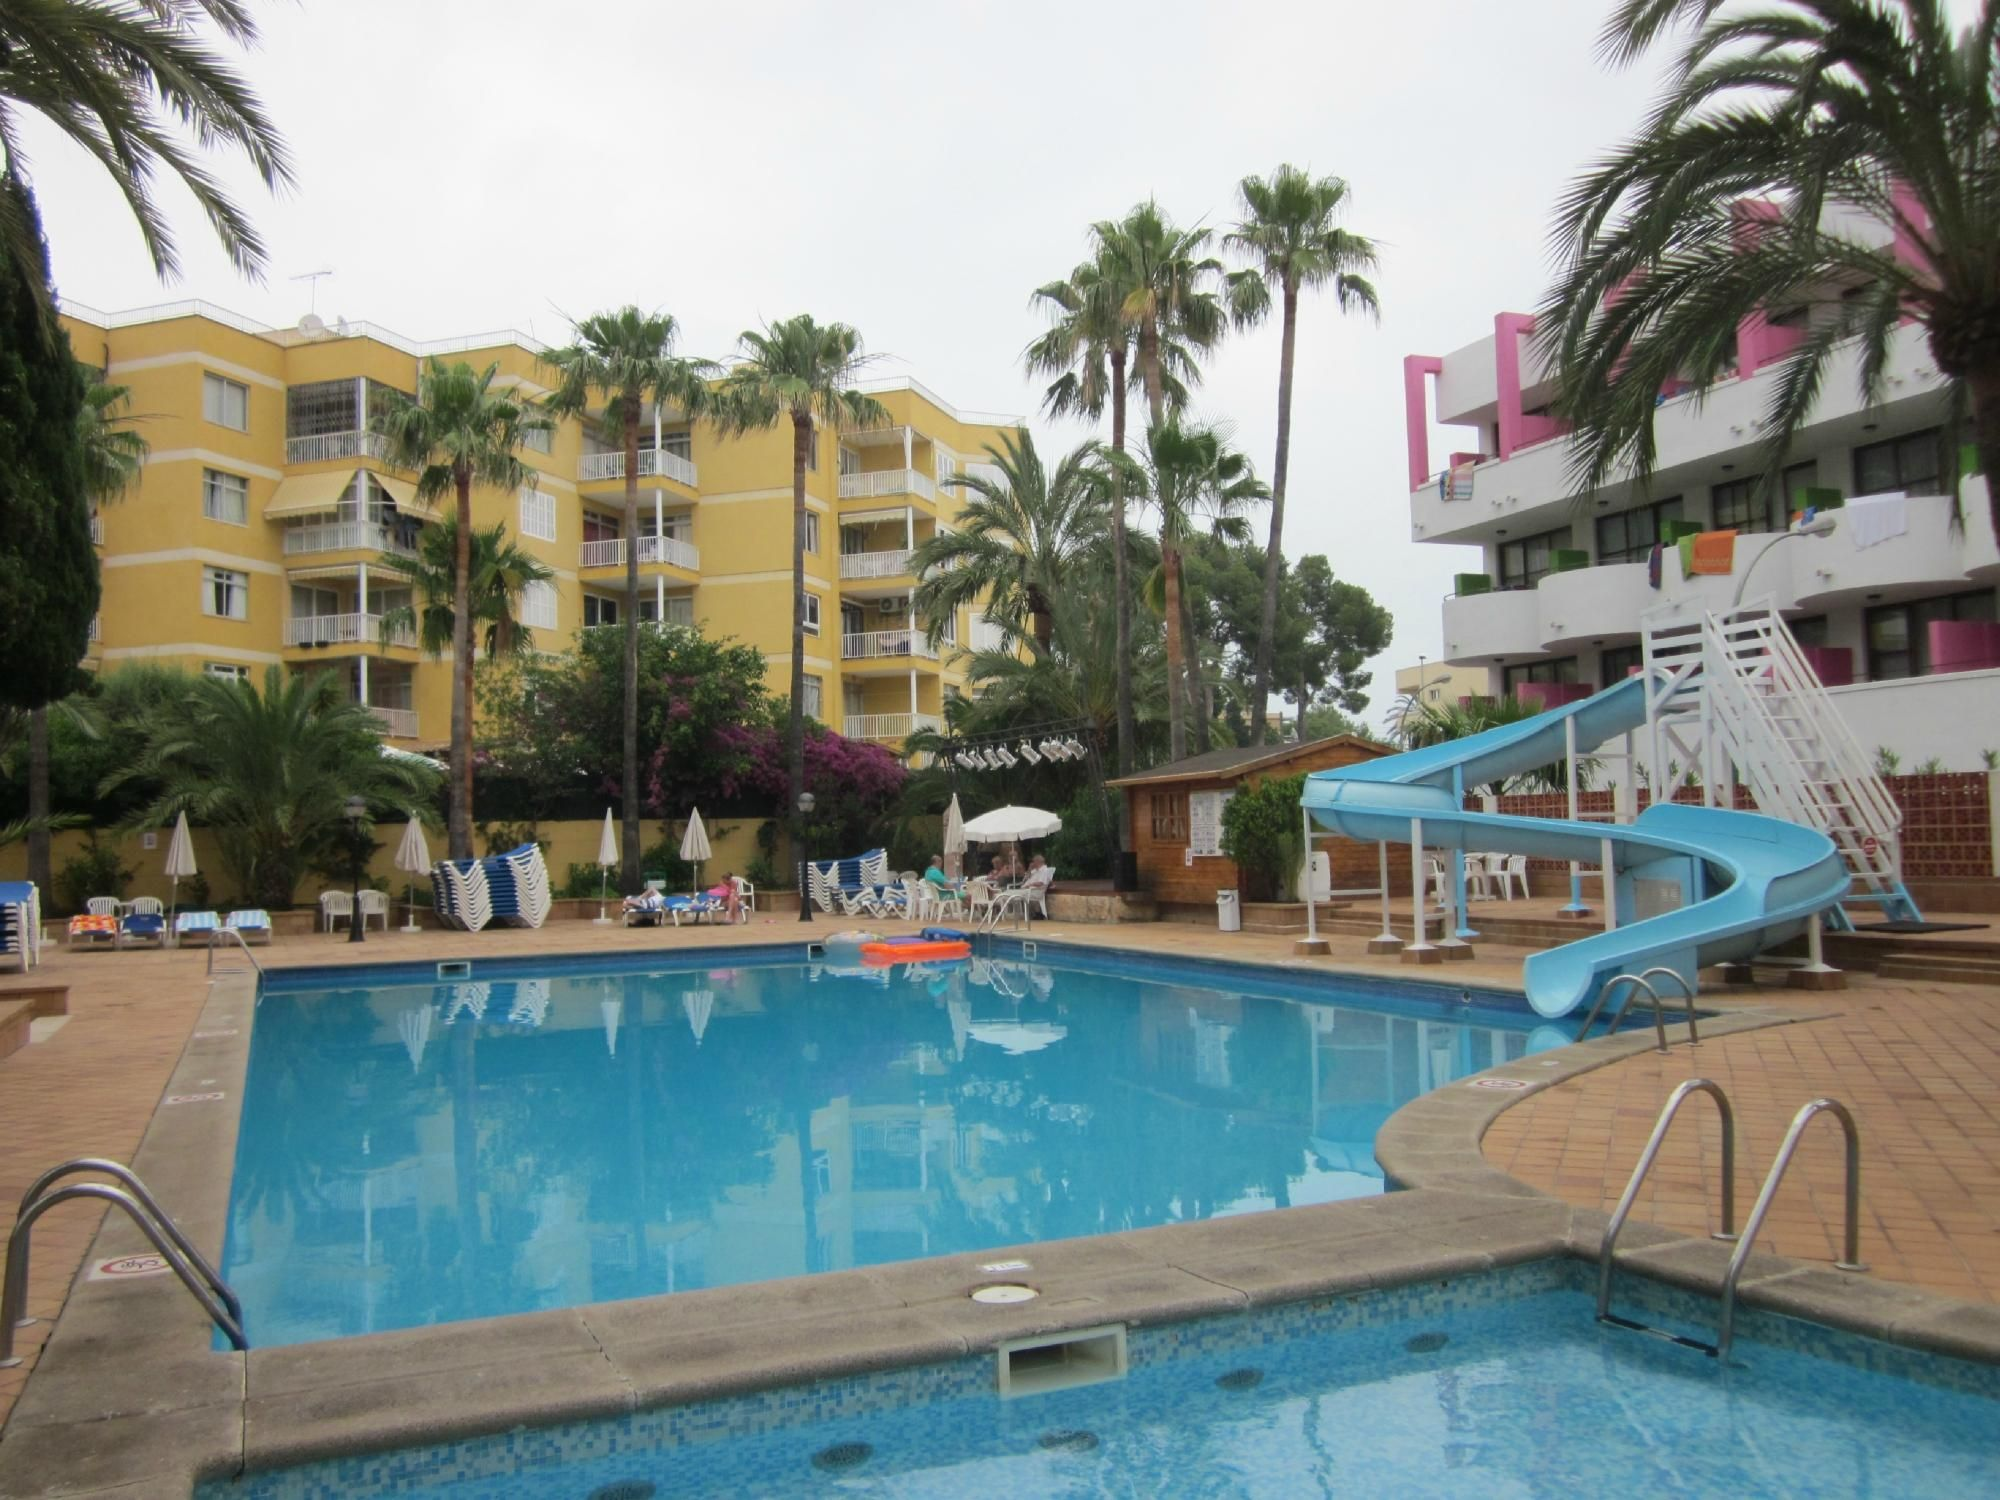 Ola Club Panama Palmanova Majorca Hotel Reviews Tripadvisor